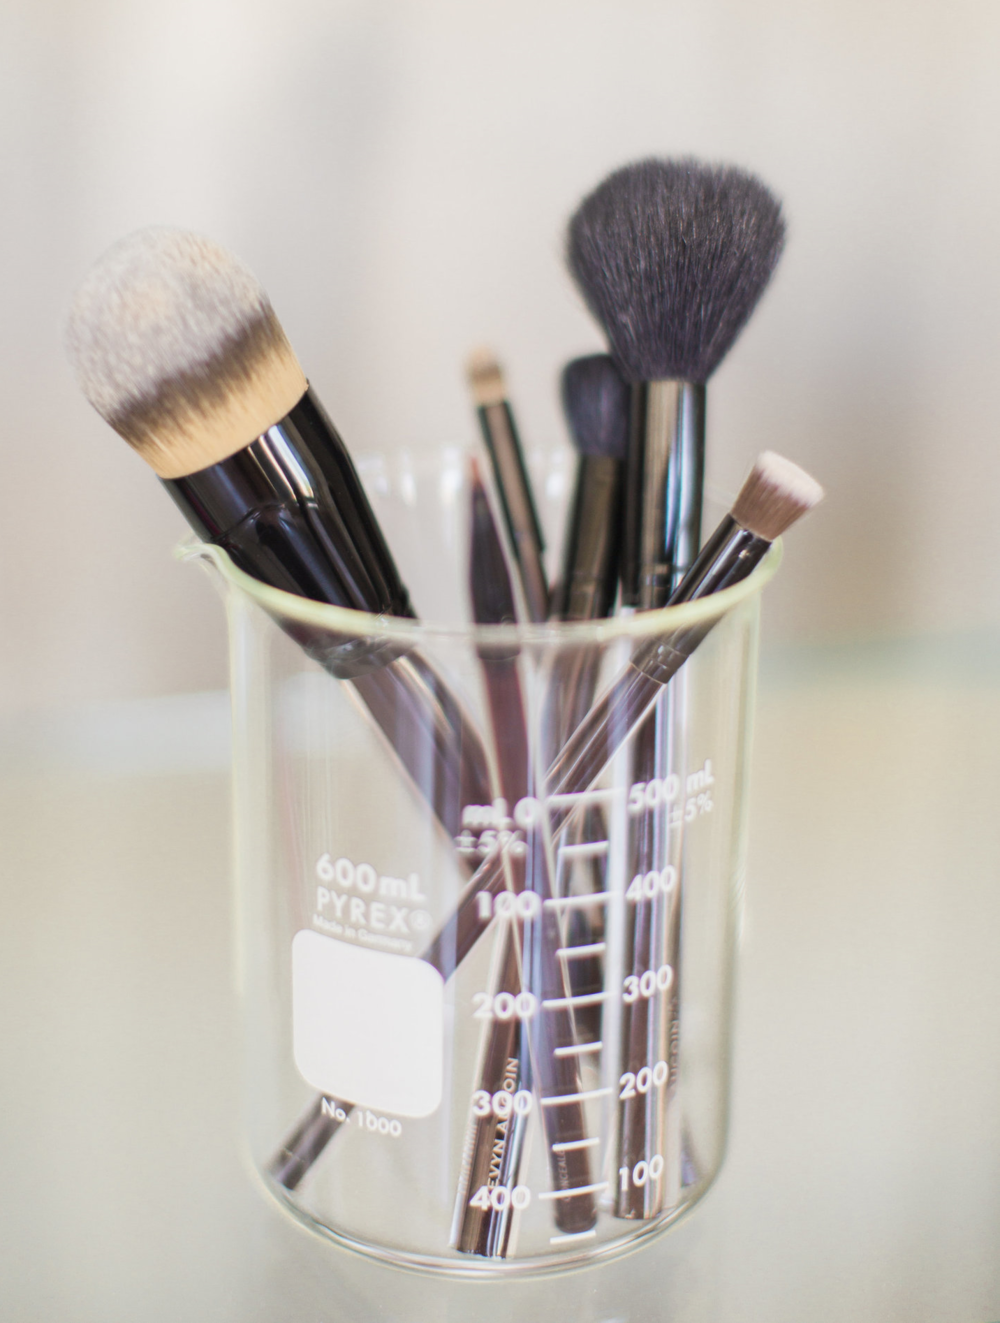 Brush Blush Day-Blush-0104.jpg